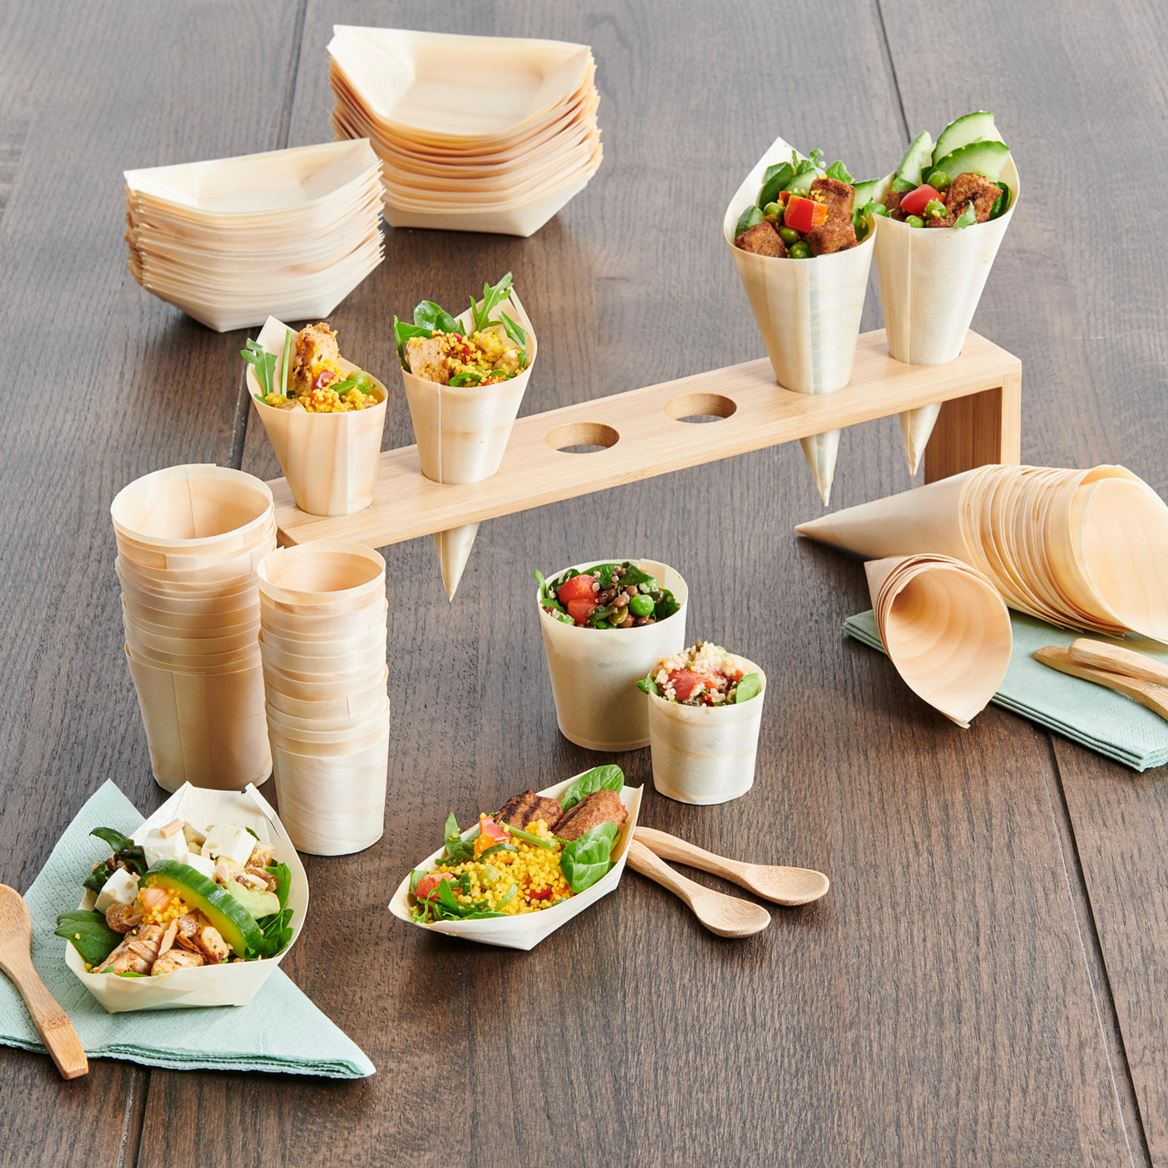 APERO ECO Coupelles set de 20 naturel Larg. 14 cm_apero-eco-coupelles-set-de-20-naturel-larg--14-cm